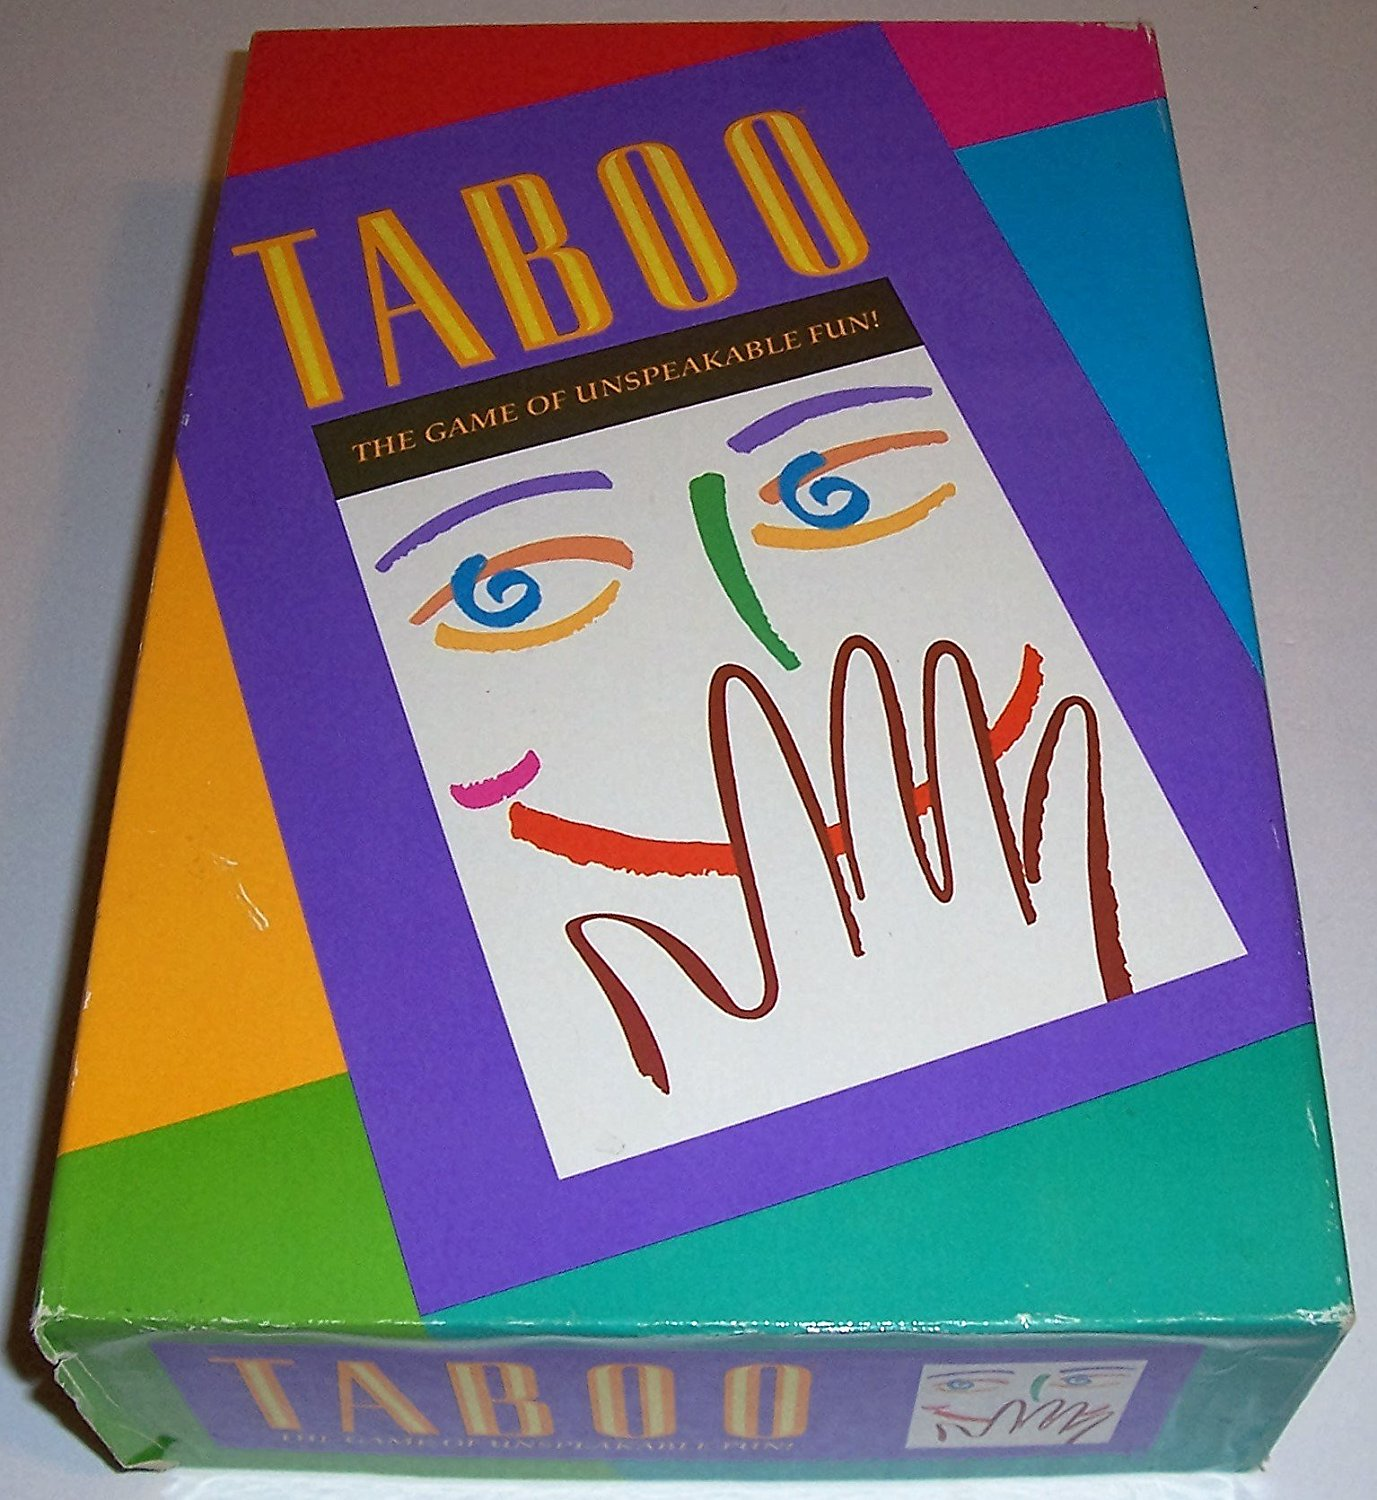 Taboo the Game of Unspeakable Fun (1989 Edition), 4-10 Players By Milton Bradley by